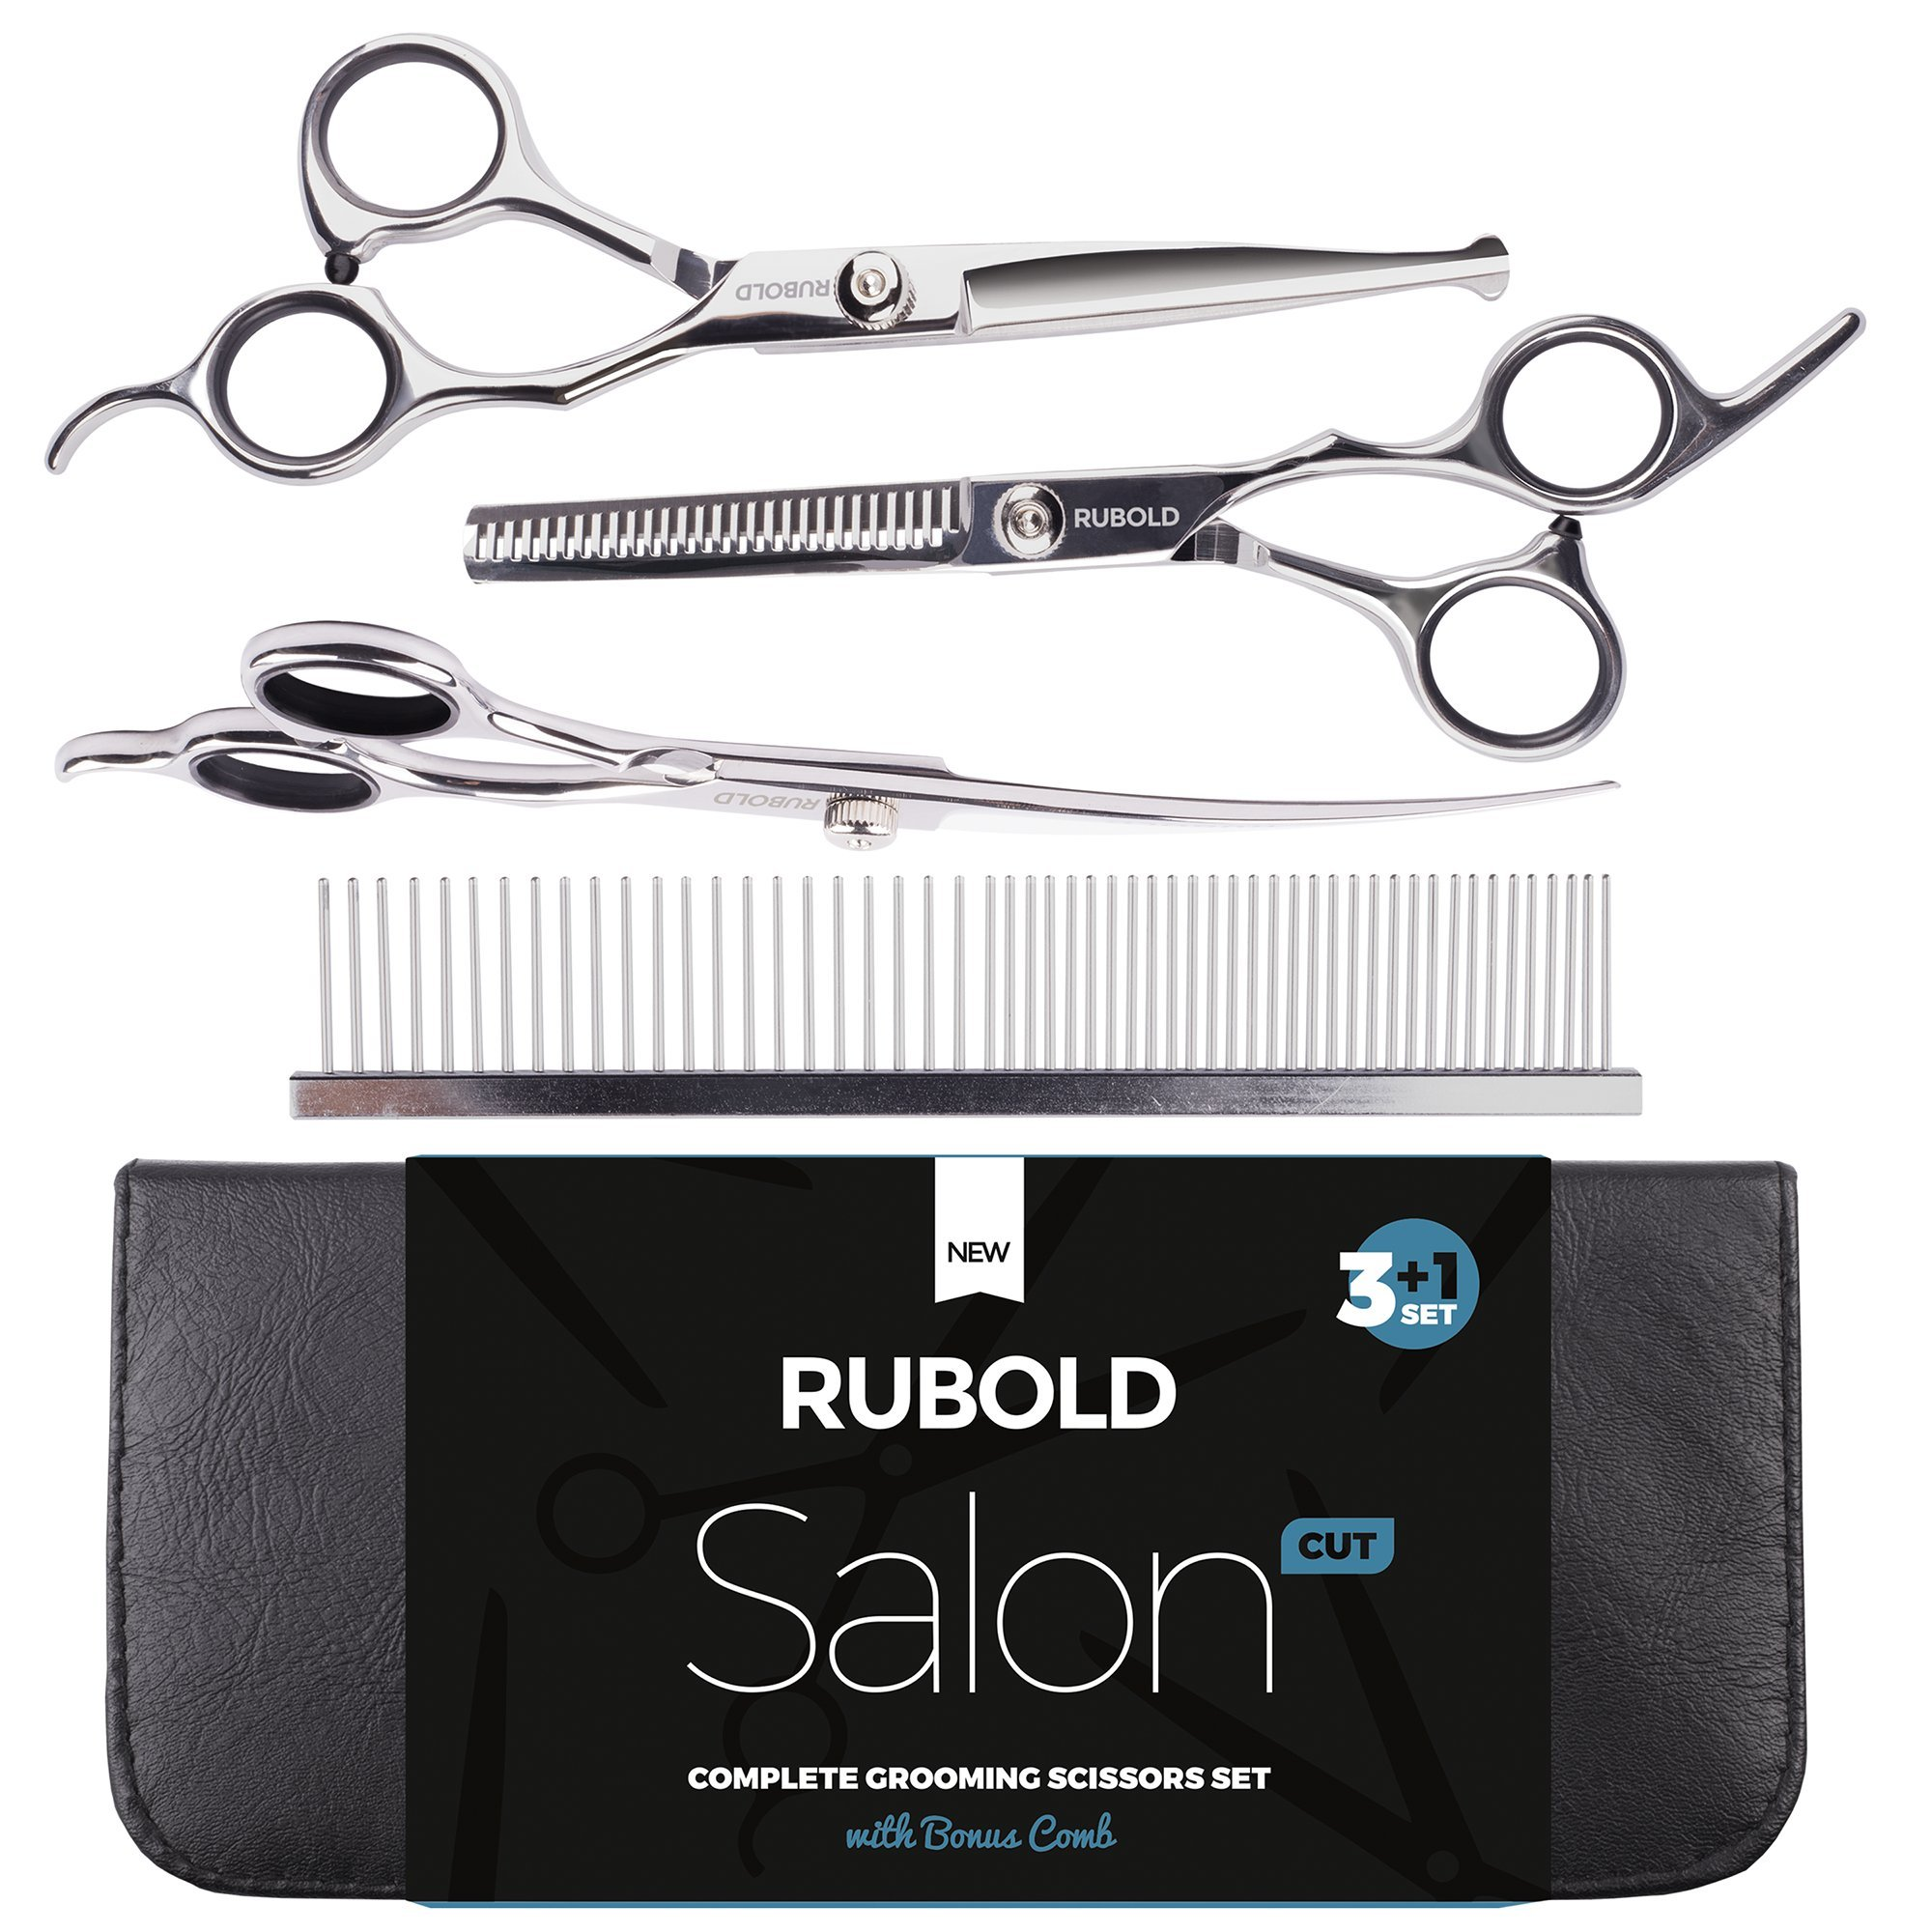 RUBOLD Professional Dog Grooming Scissors Set — Stainless Steel Rounded Tip Sharp Durable Shears with Pet Grooming Comb in Kit — Best Tools for Trimming Every Dog and Cat Salon Cut